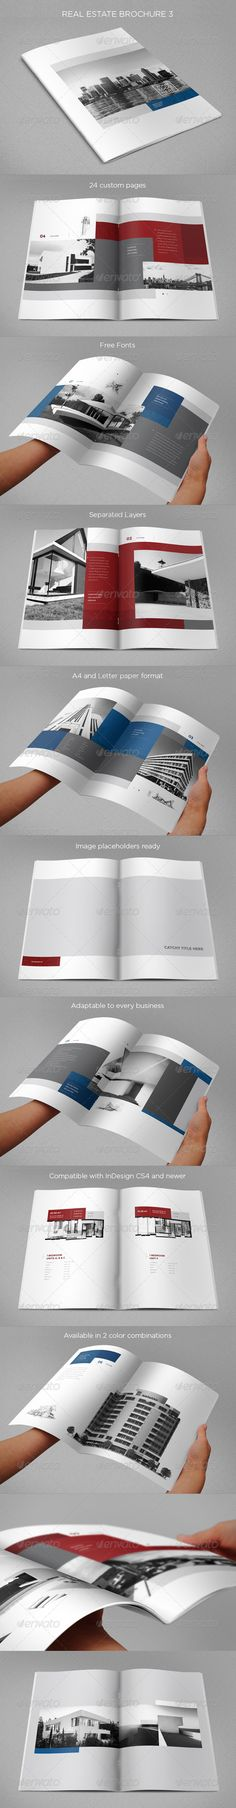 Real Estate Brochure 3 — InDesign INDD #blue #red • Available here → https://graphicriver.net/item/real-estate-brochure-3/8466289?ref=pxcr